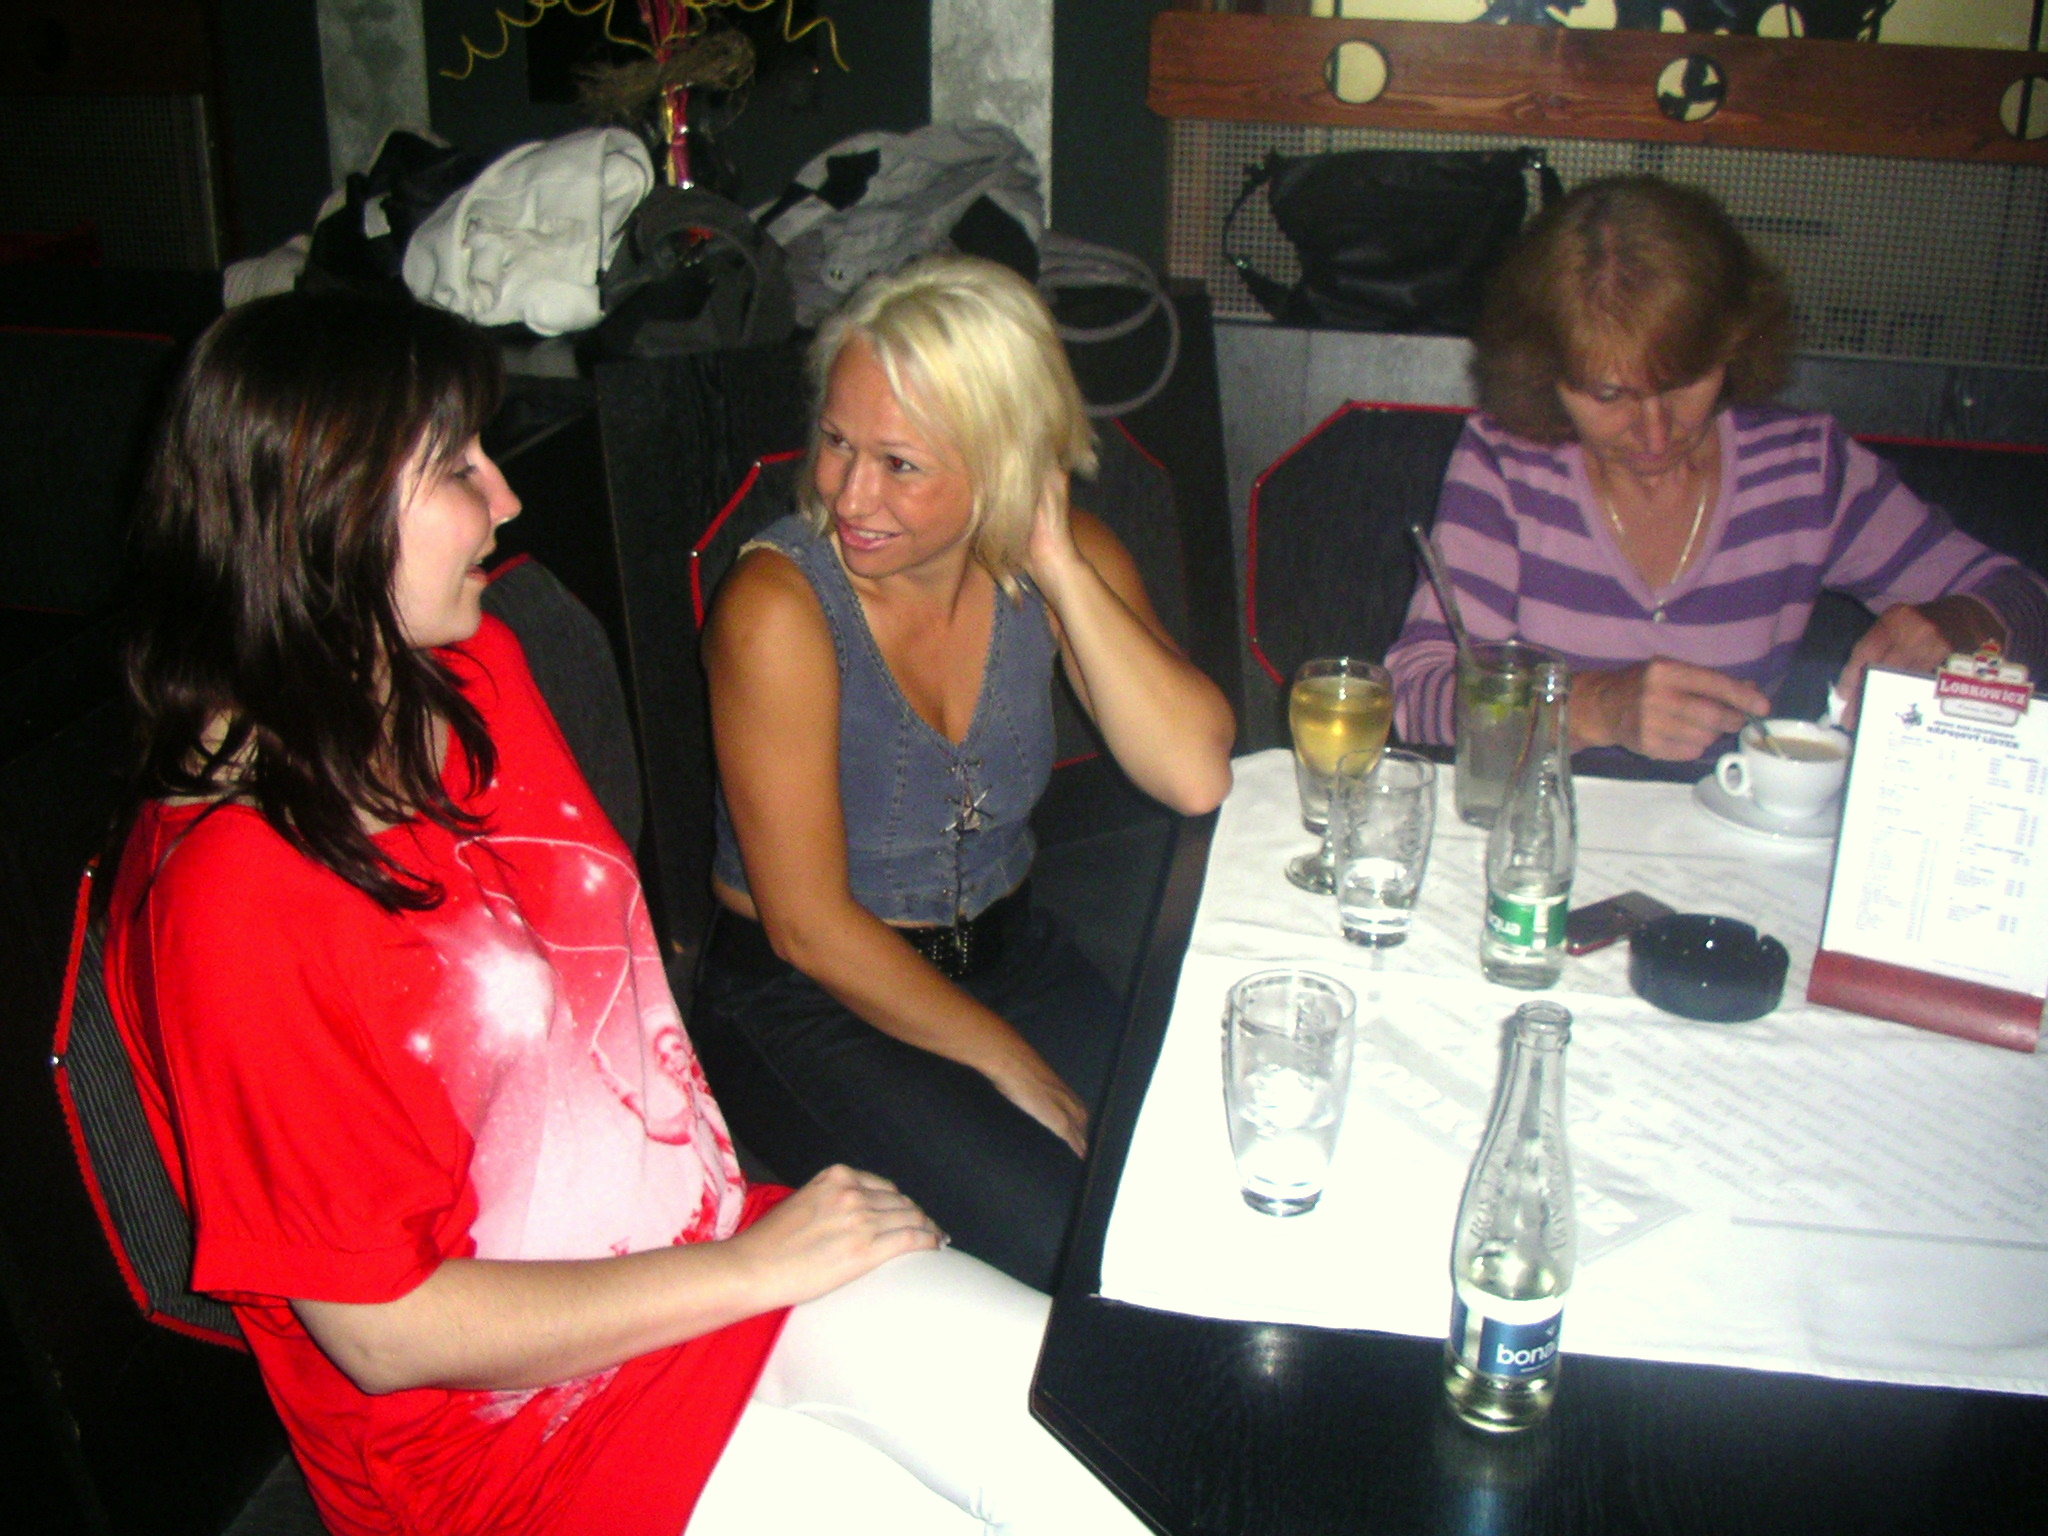 party_v_barvach_5_20111111_1156165853